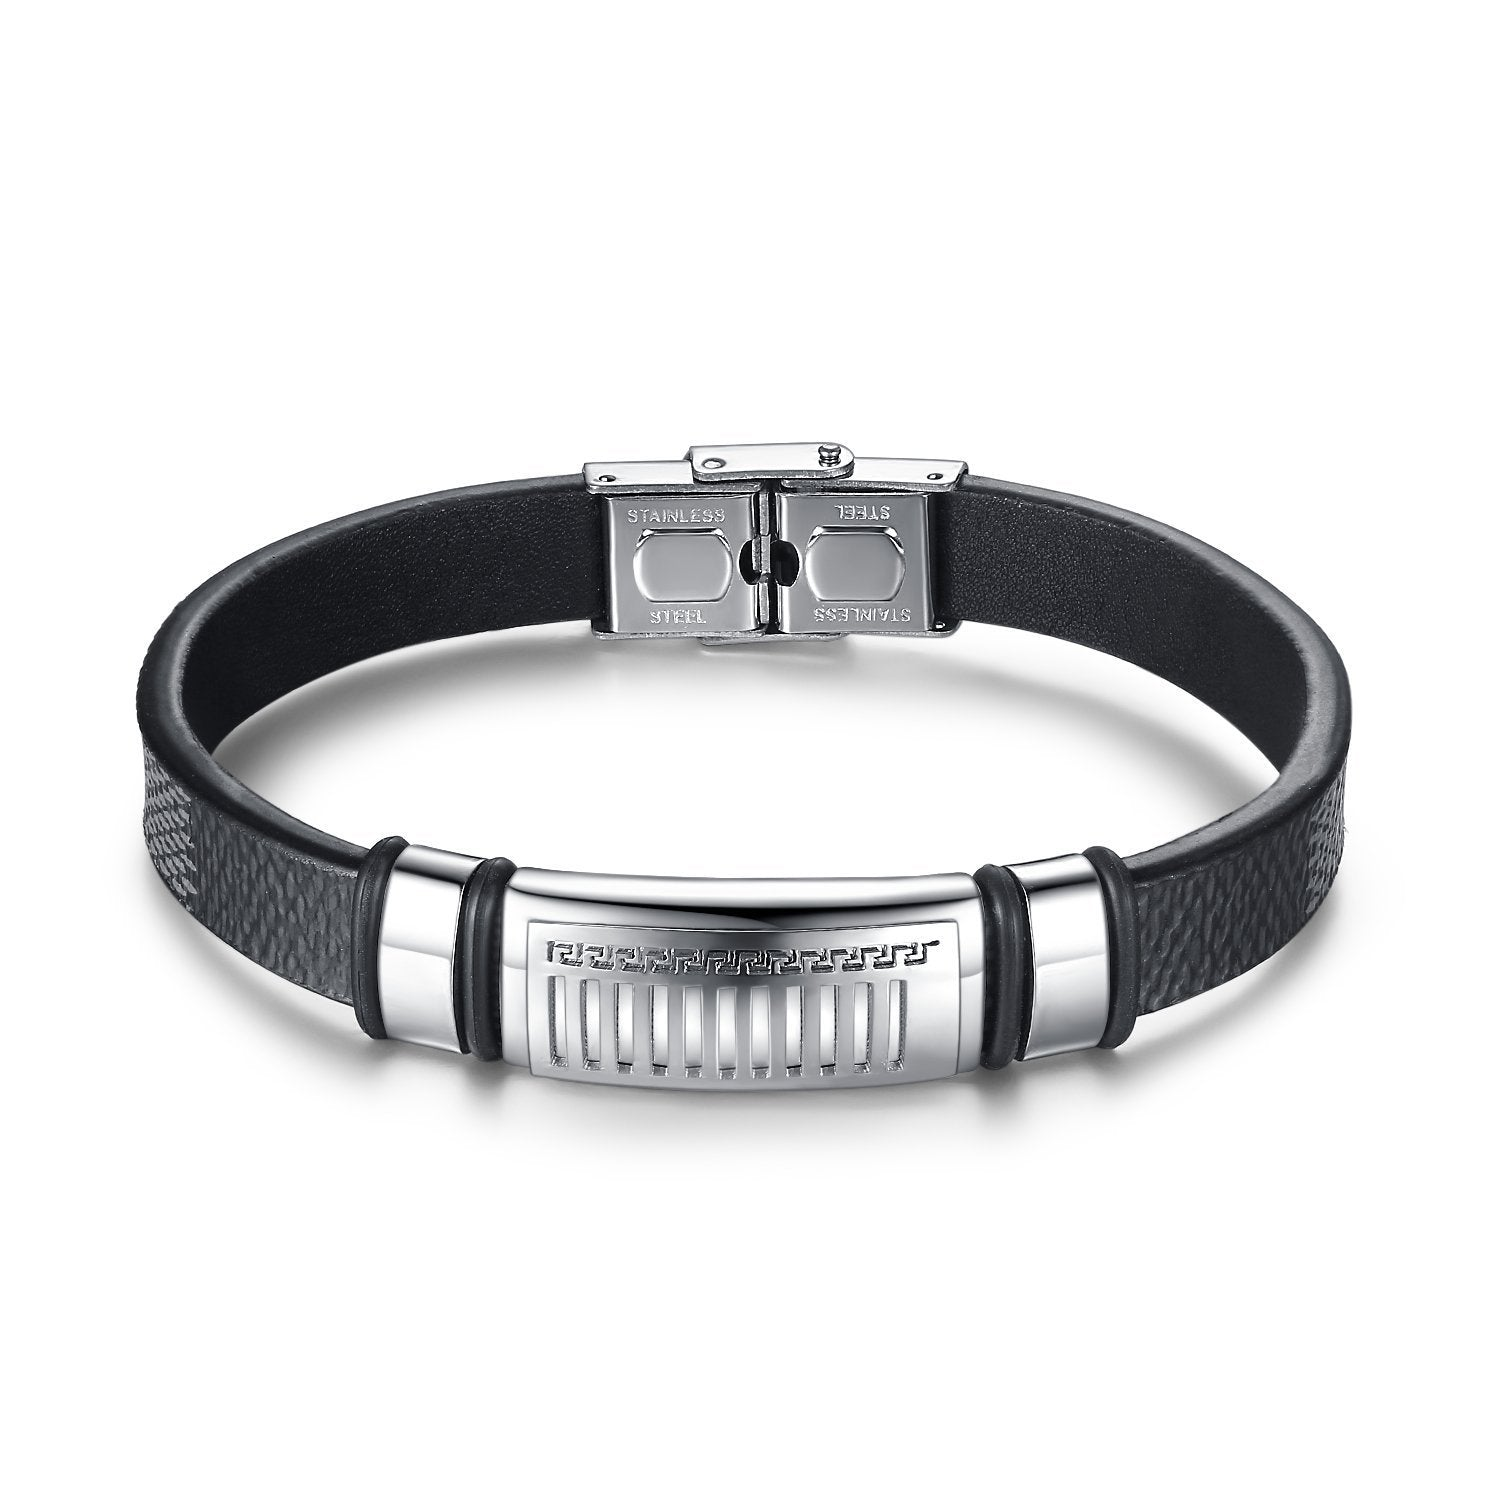 Aoiy Men's Stainless Steel Greek Key and Black Leather Bracelet Ggb014wu @ Sons of Odin™ -Jewelry